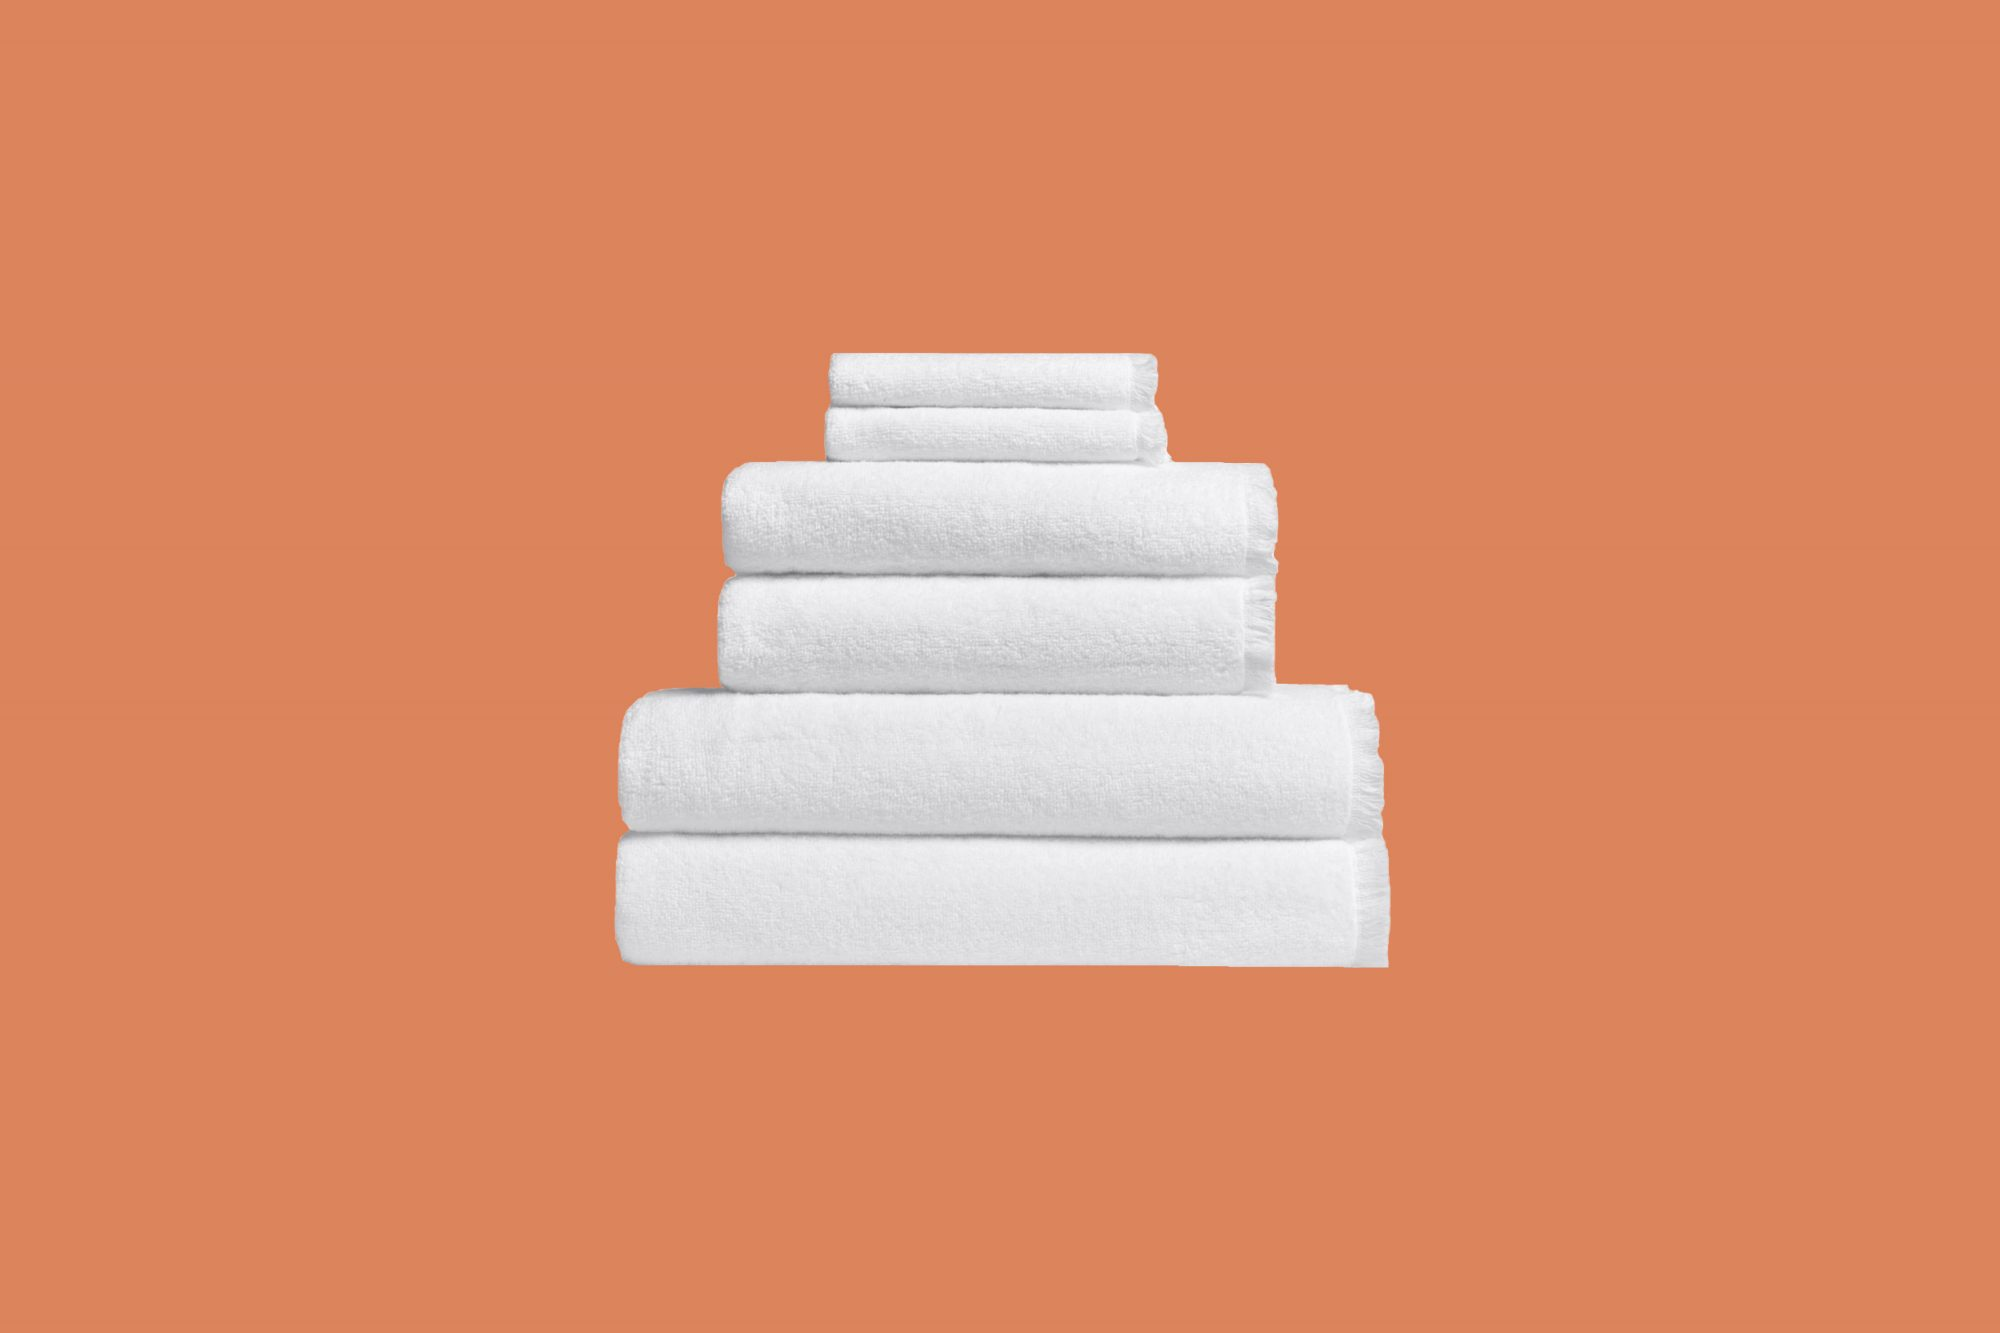 white cotton linen towels in a stack